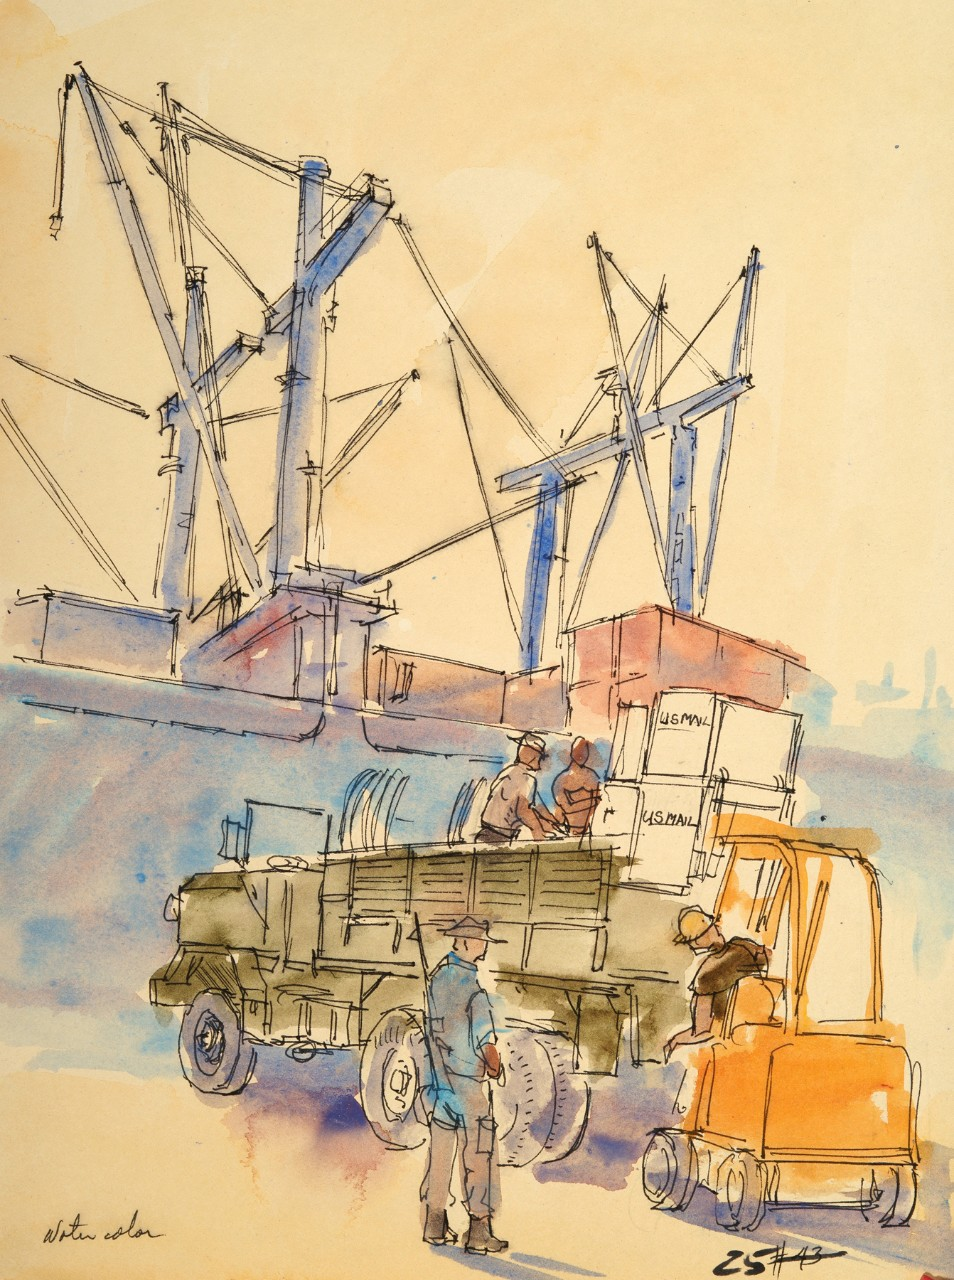 Soldiers load crates of mail from a forklift onto a truck, a ship is in the background next to the pier